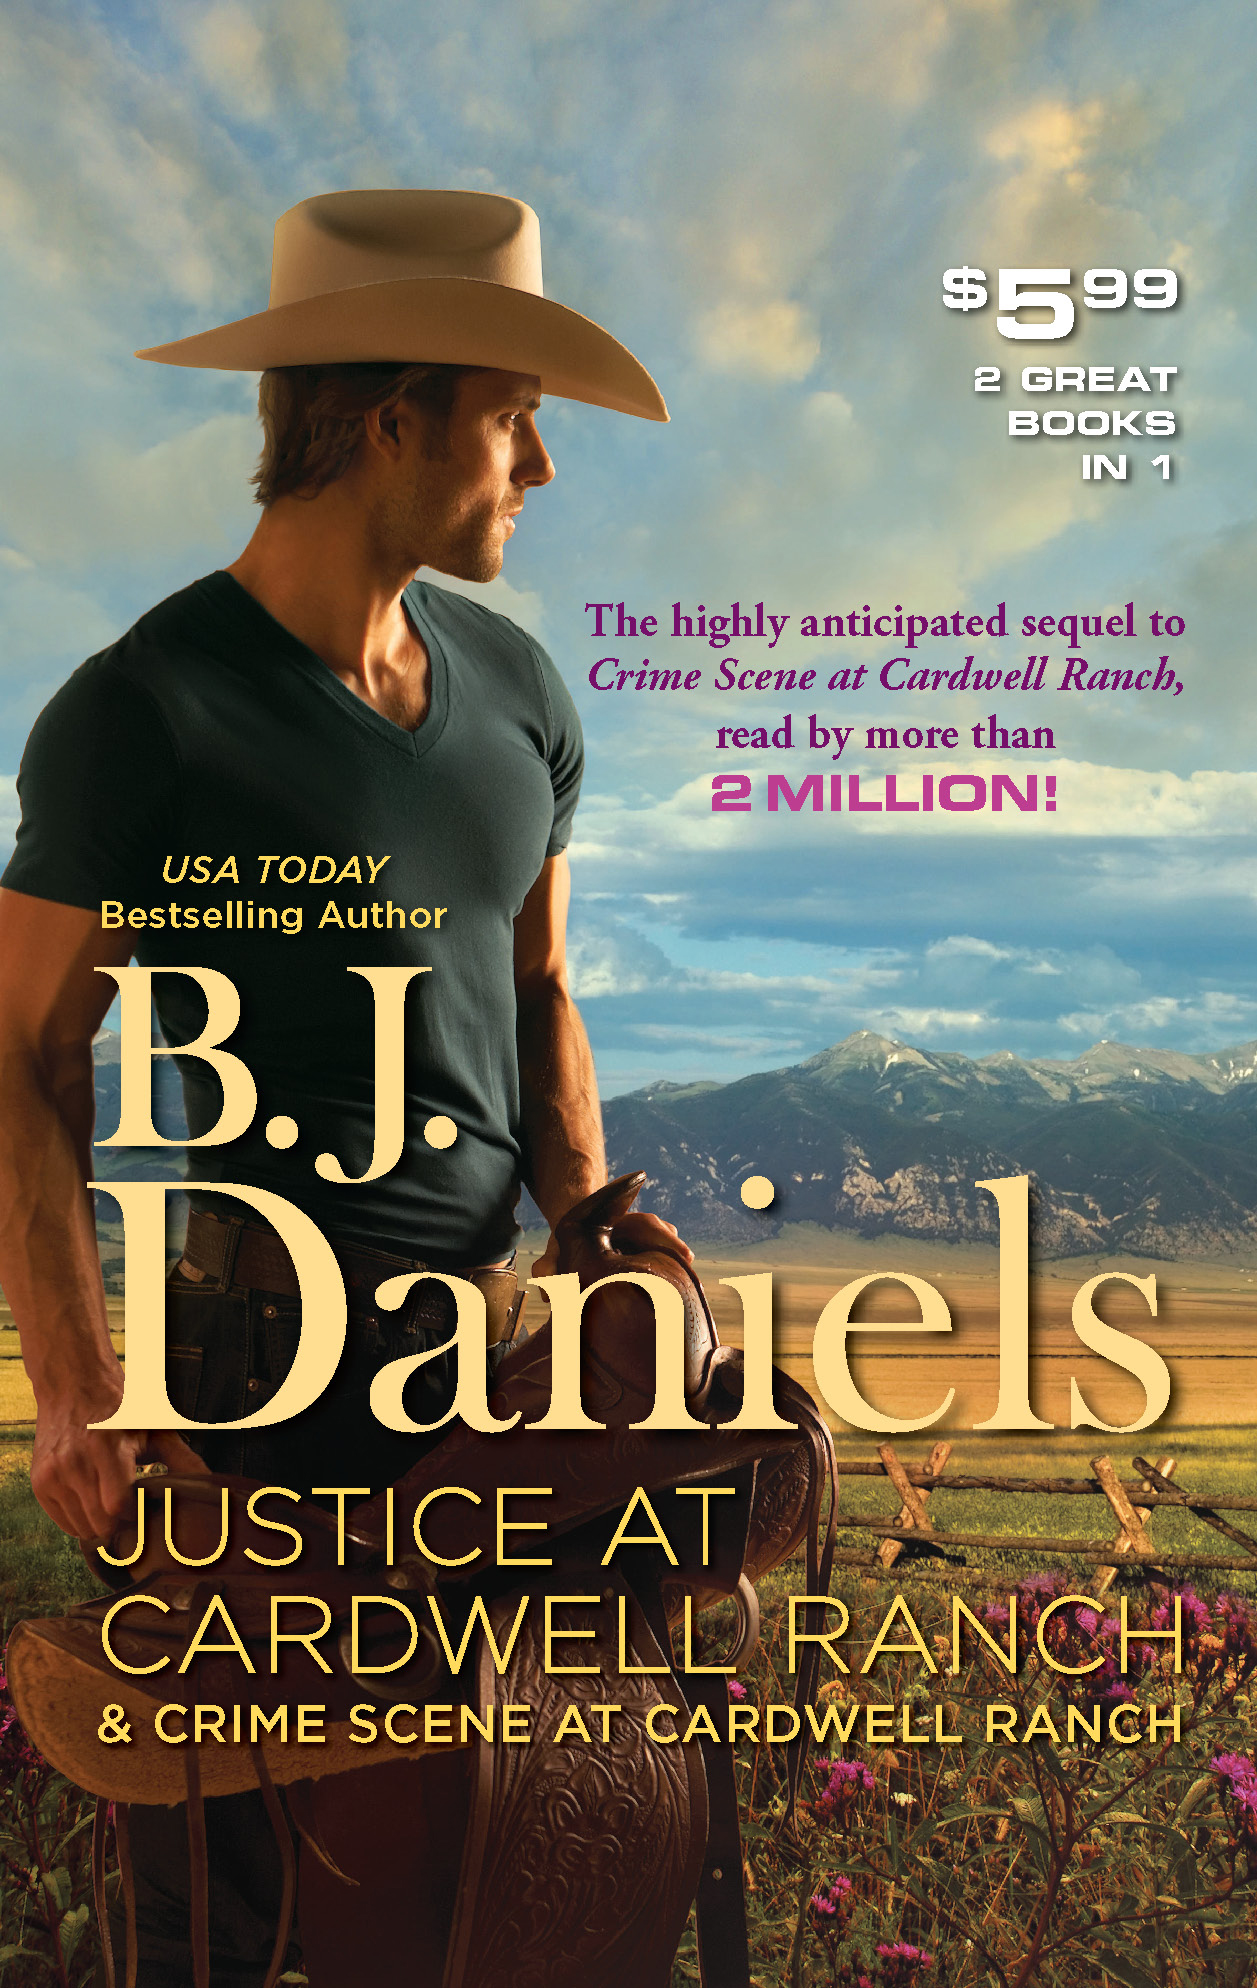 Justice at Cardwell Ranch & Crime Scene at Cardwell Ranch: Justice at Cardwell Ranch\Crime Scene at Cardwell Ranch By: B.J. Daniels